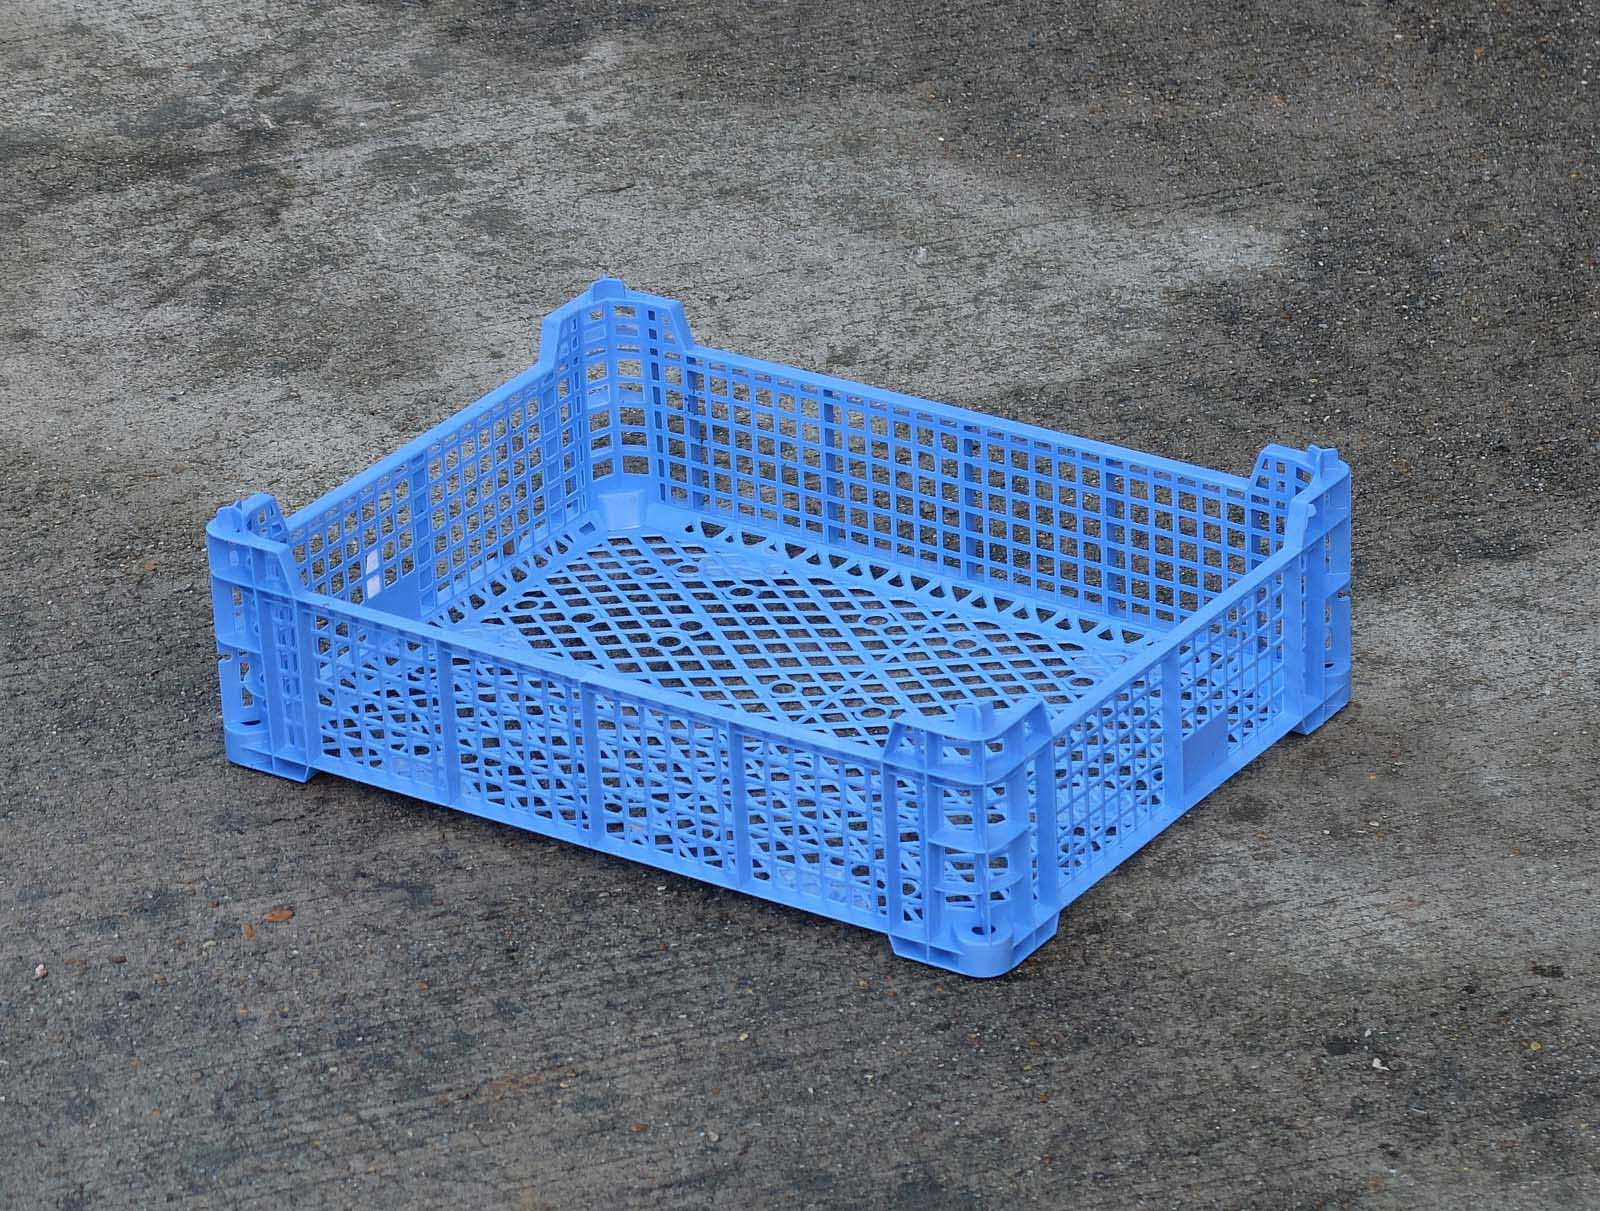 call paul 02392366582 or 07897494454 to check out our current stocks. Due to the low value and light bulky nature of these boxes, it is suggested to call and collect as needed from oy yard in PORTSMOUTH as often delivery can in crease significantly costs.